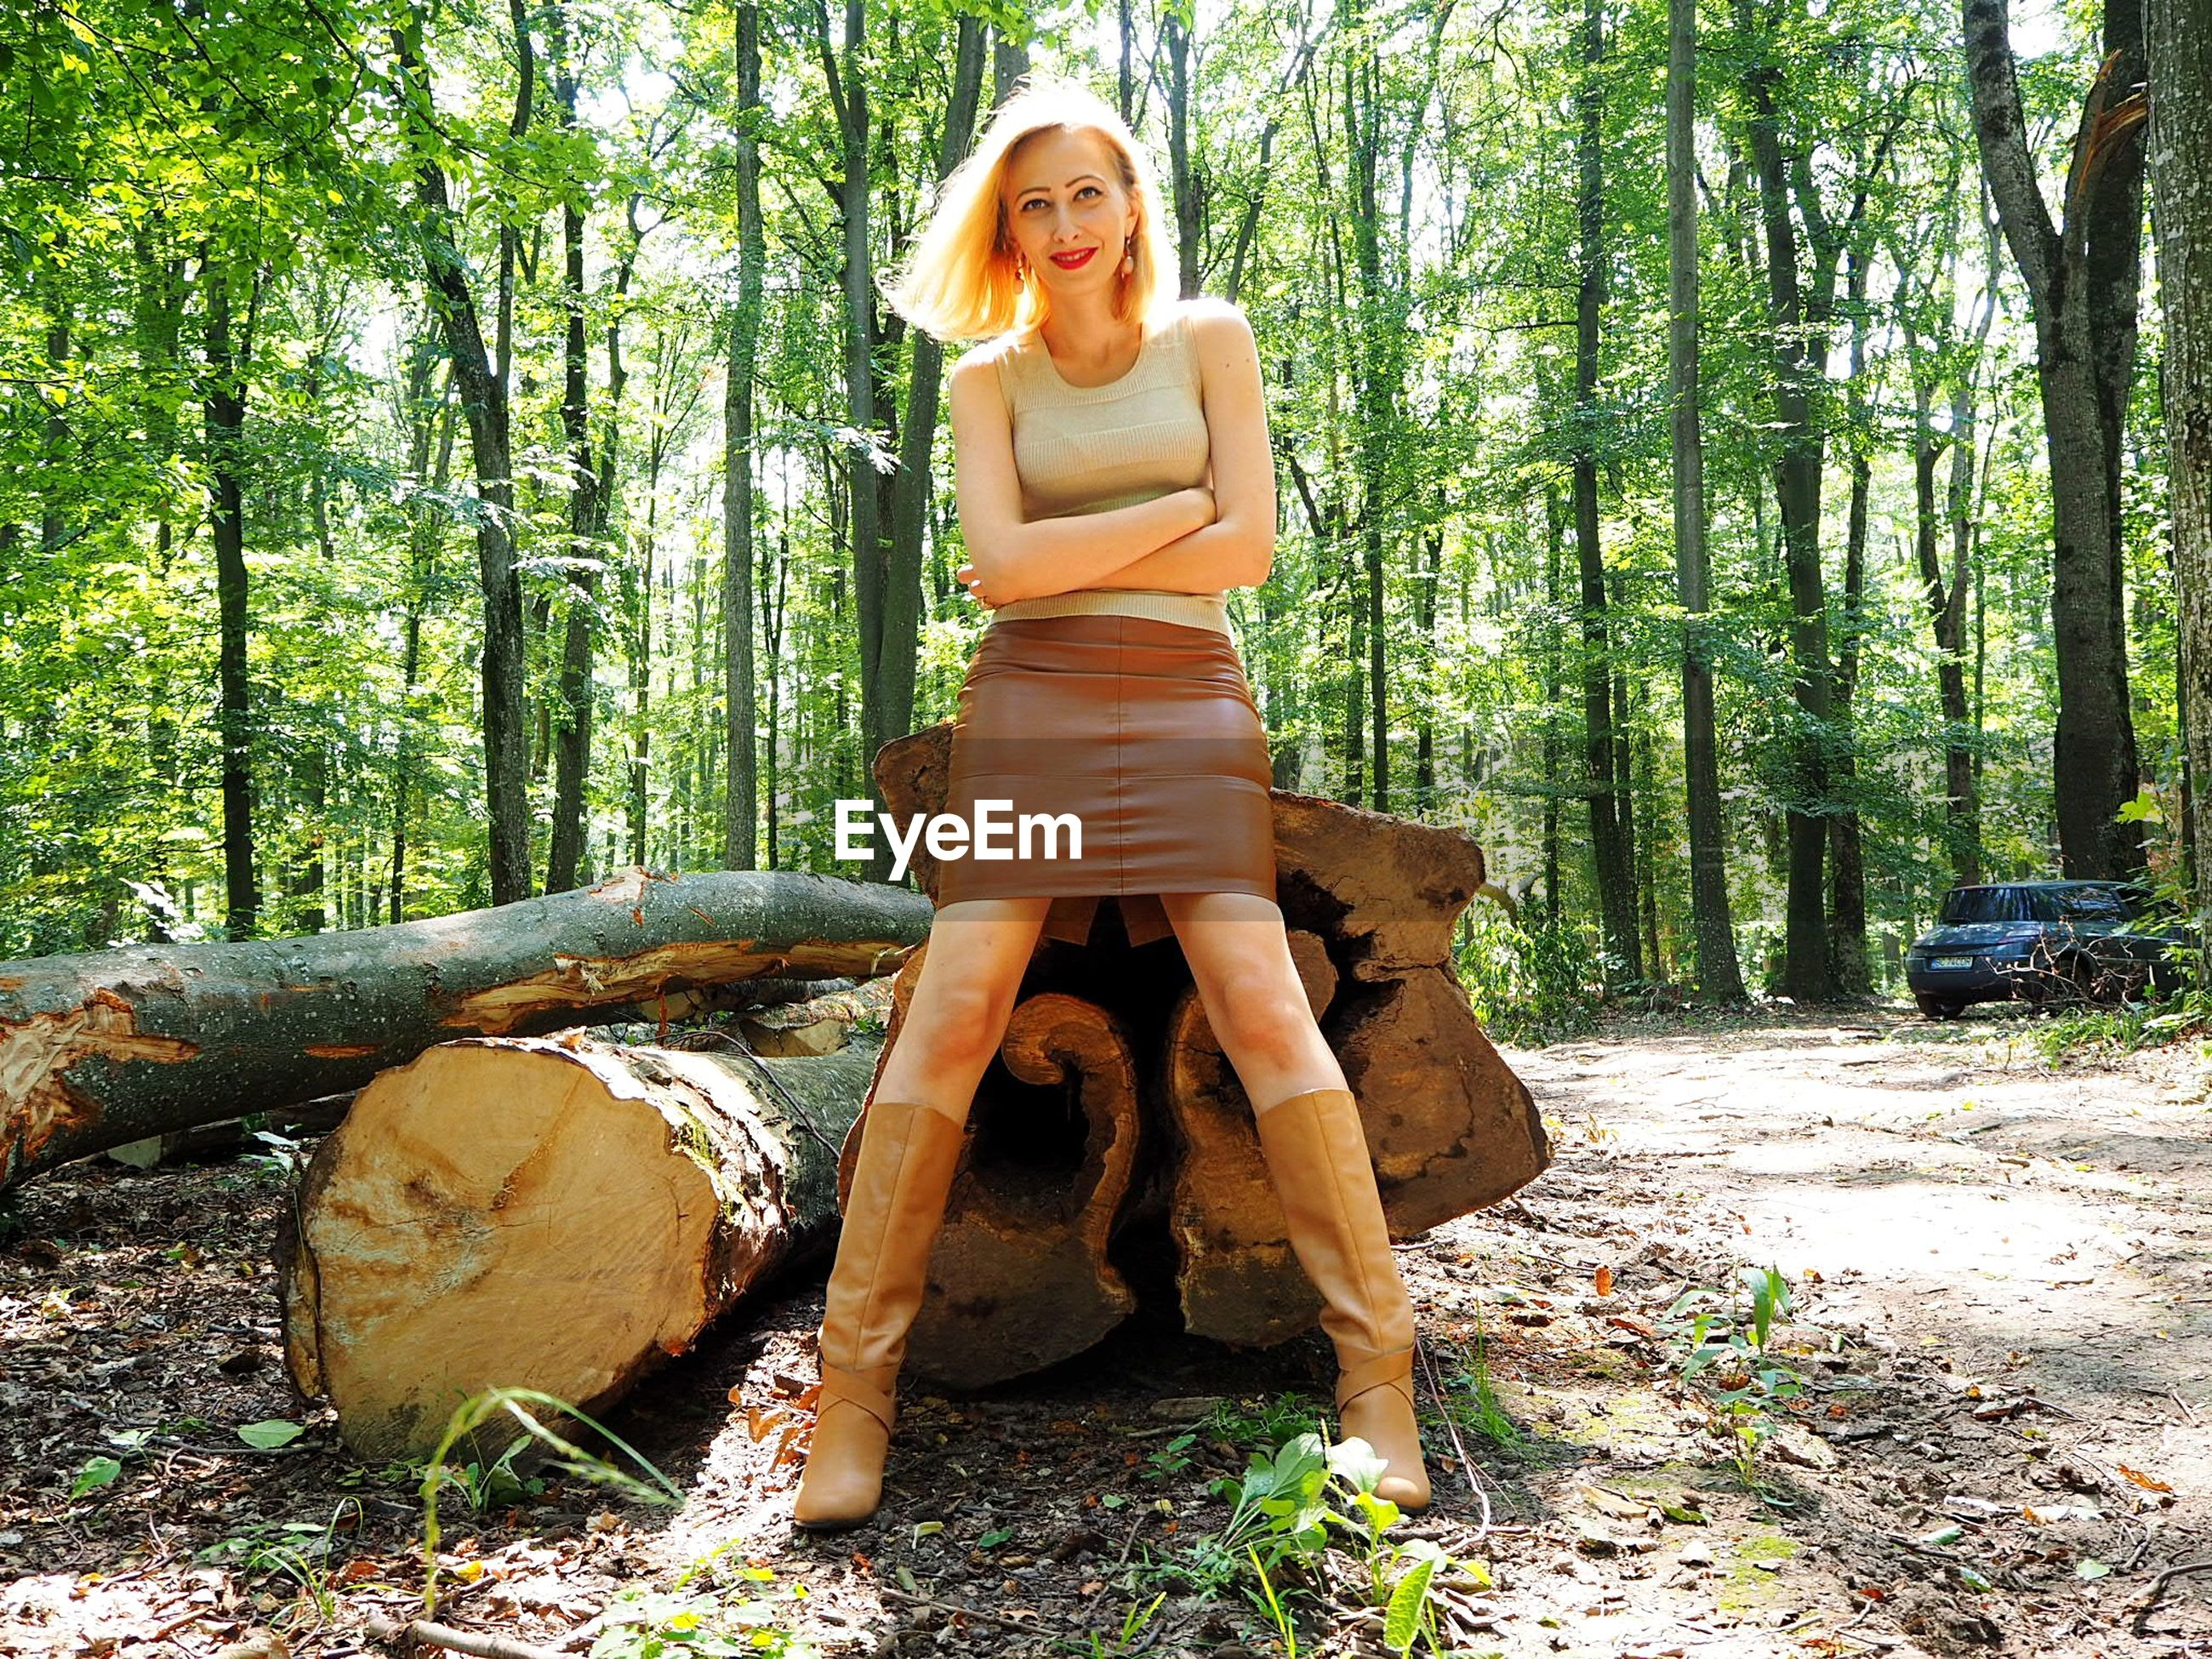 Portrait of woman standing against tree stump at forest